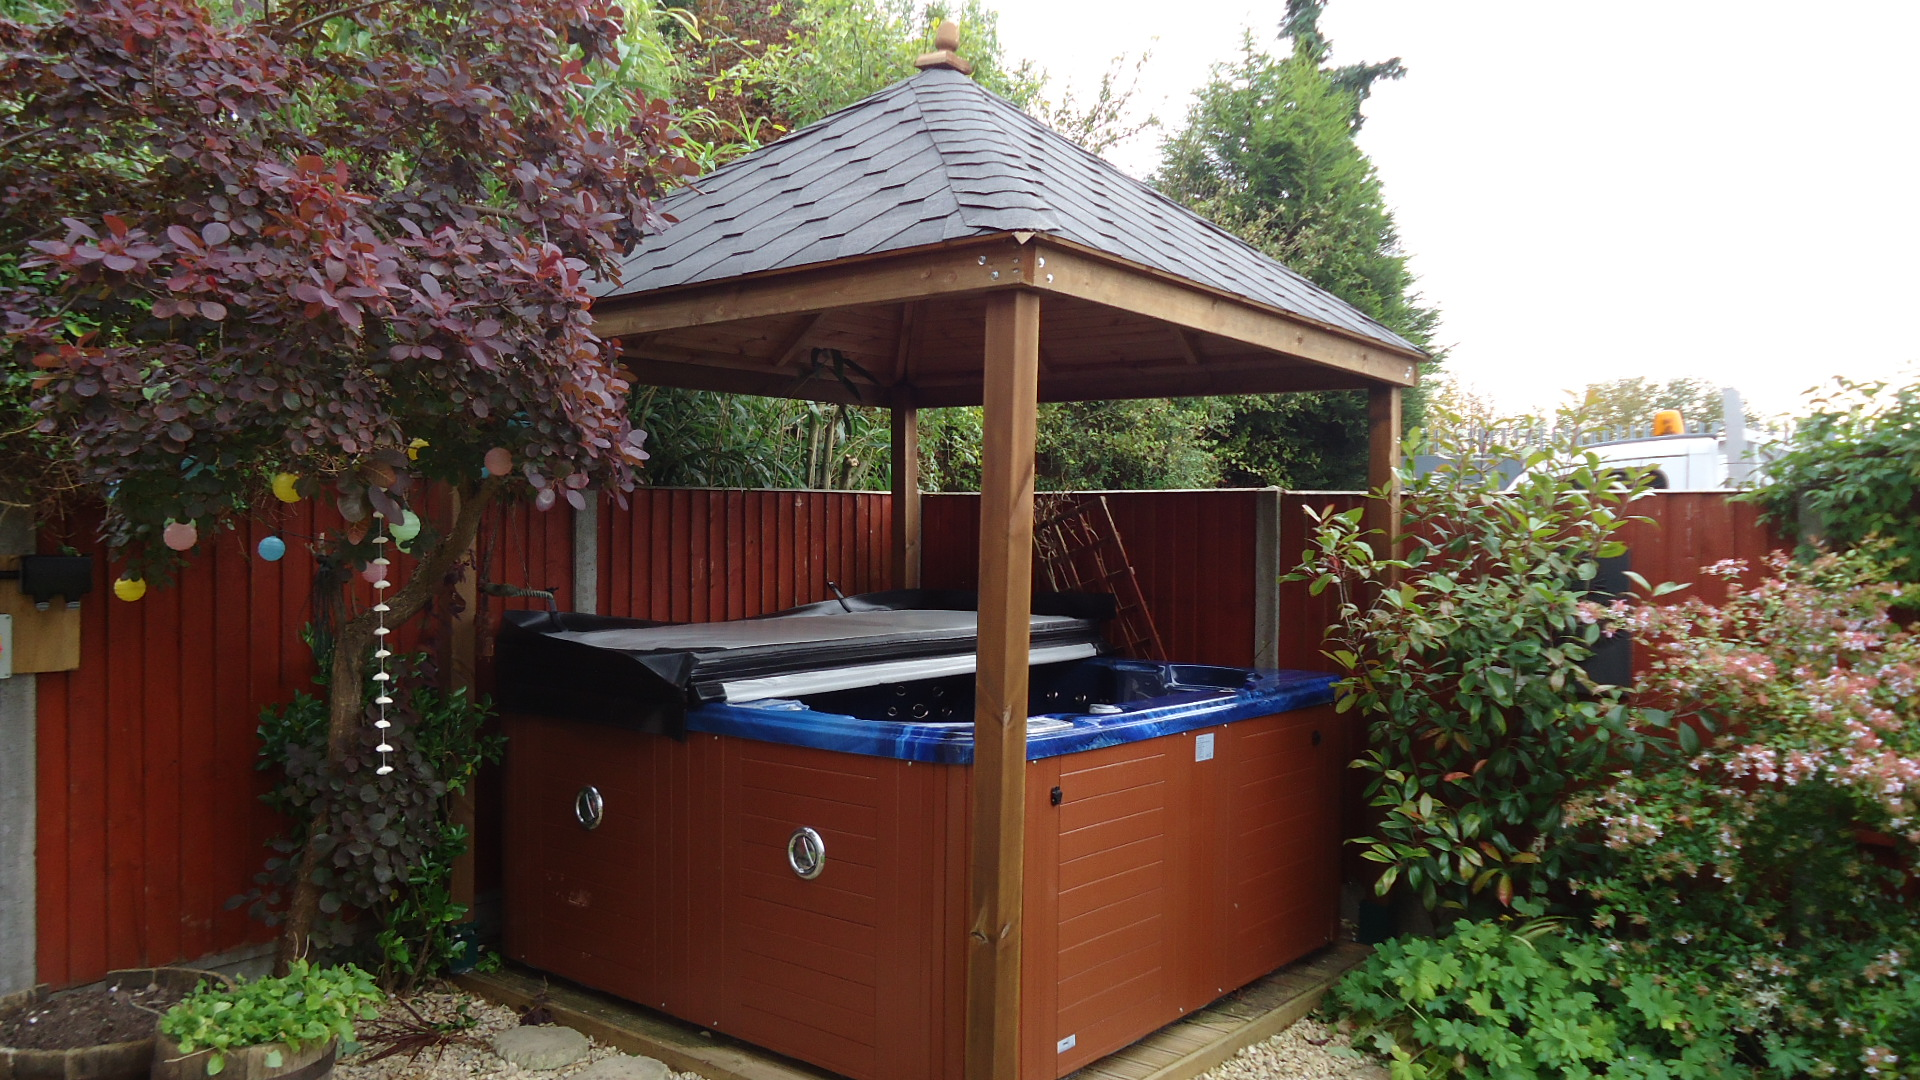 Patio life hot tub shelter 10ft x 10ft enclosure for Hot tub shelters